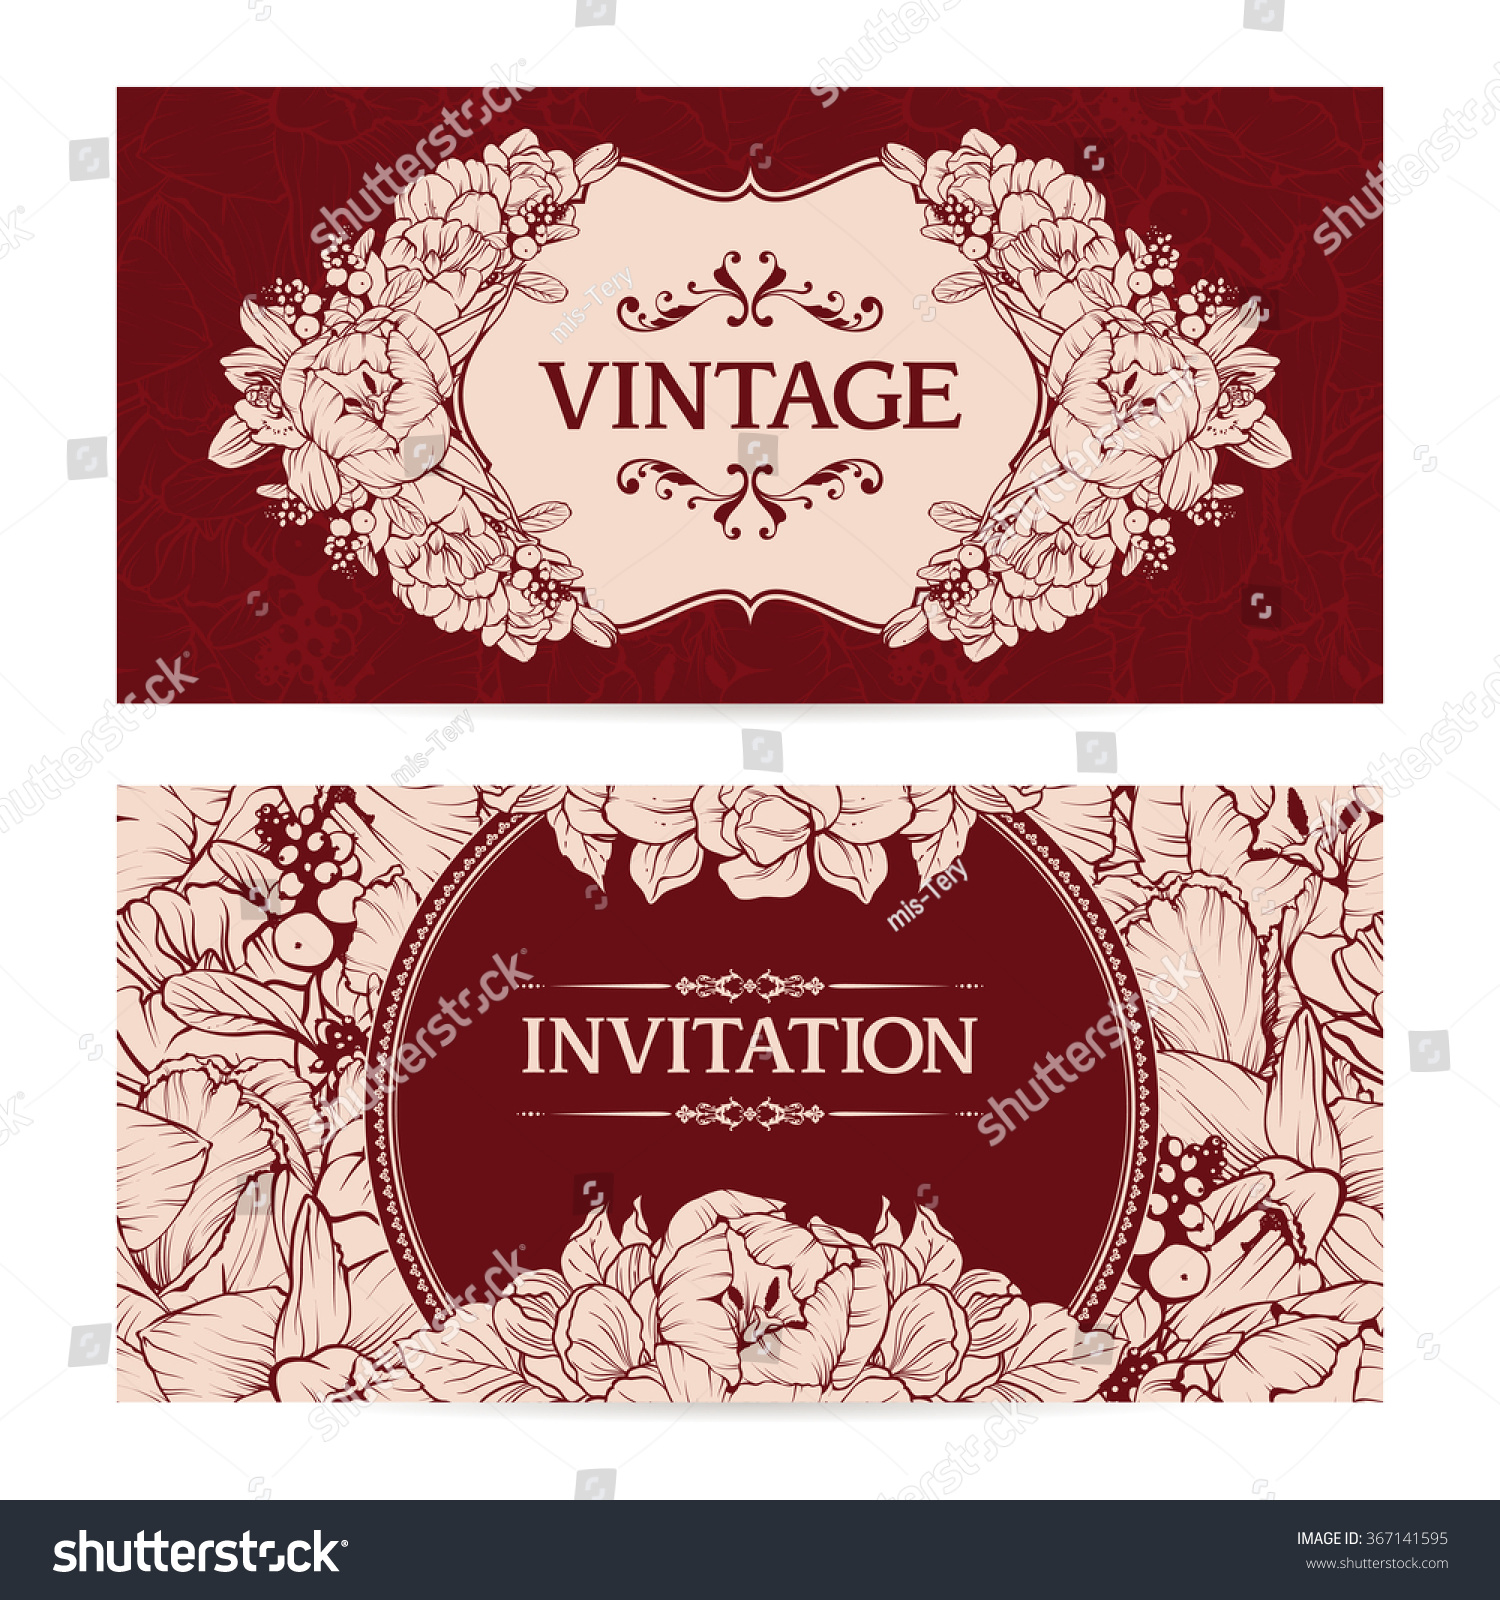 Vector Set Vintage Templates Seamless Floral Stock Vector (Royalty ...